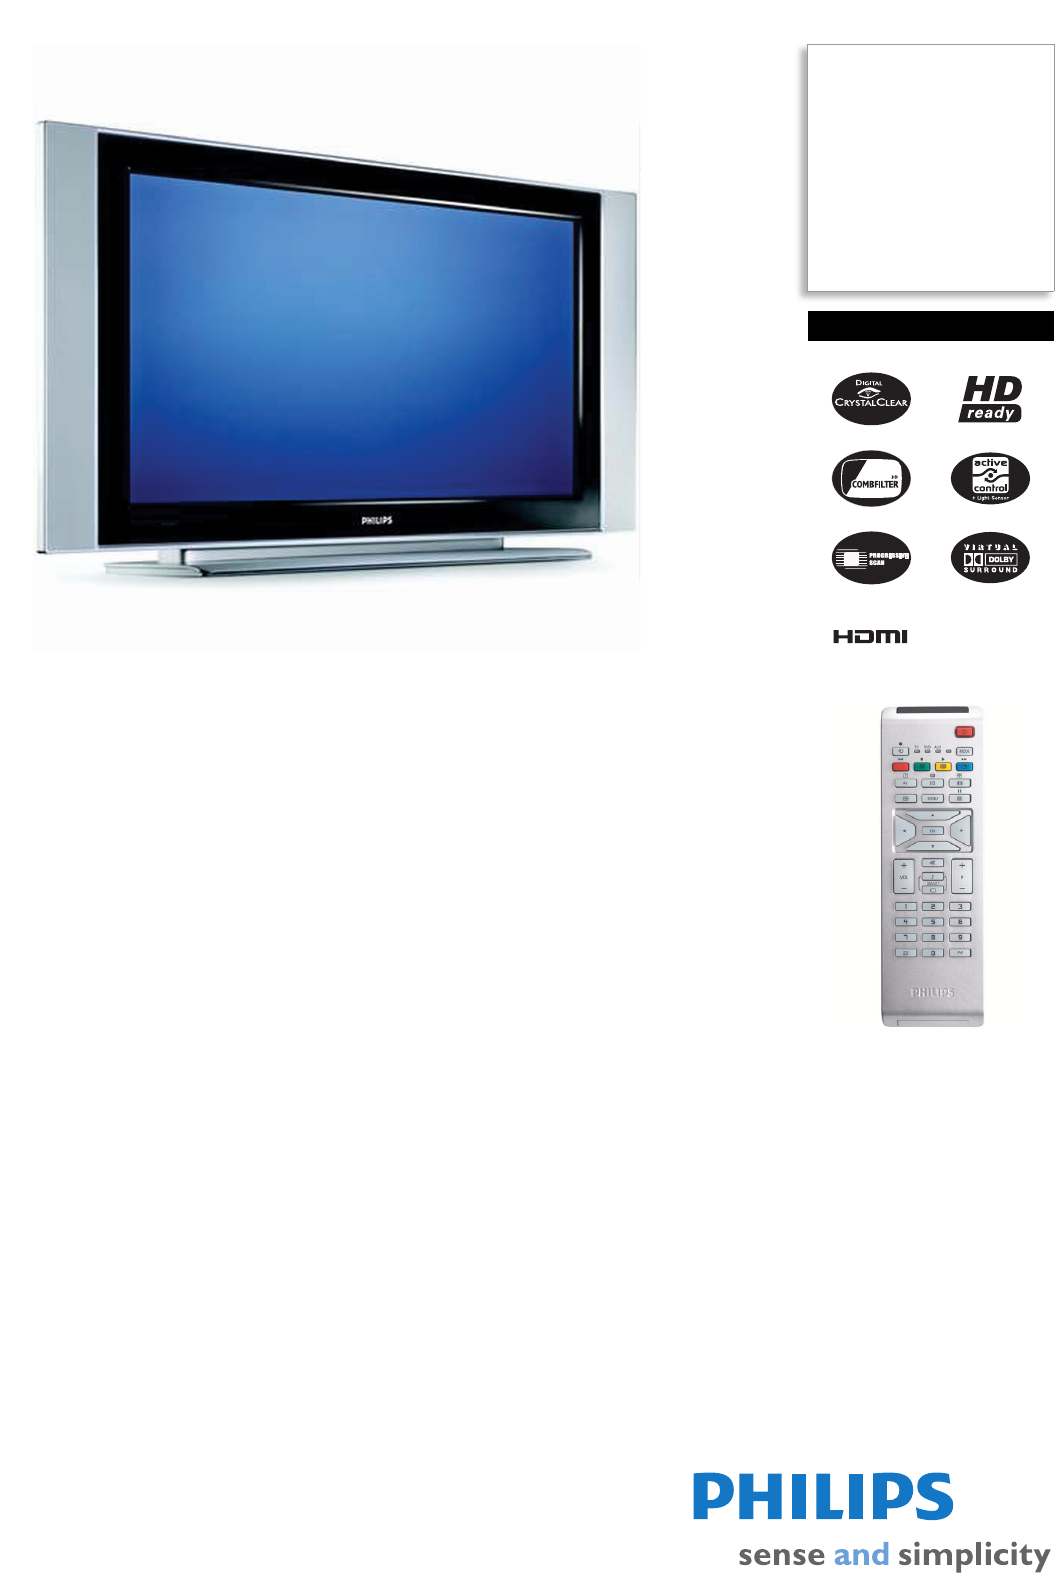 philips flat panel television 26pf5320 98 user guide manualsonline com rh tv manualsonline com Philips Universal Remote User Manual Philips TV Manual